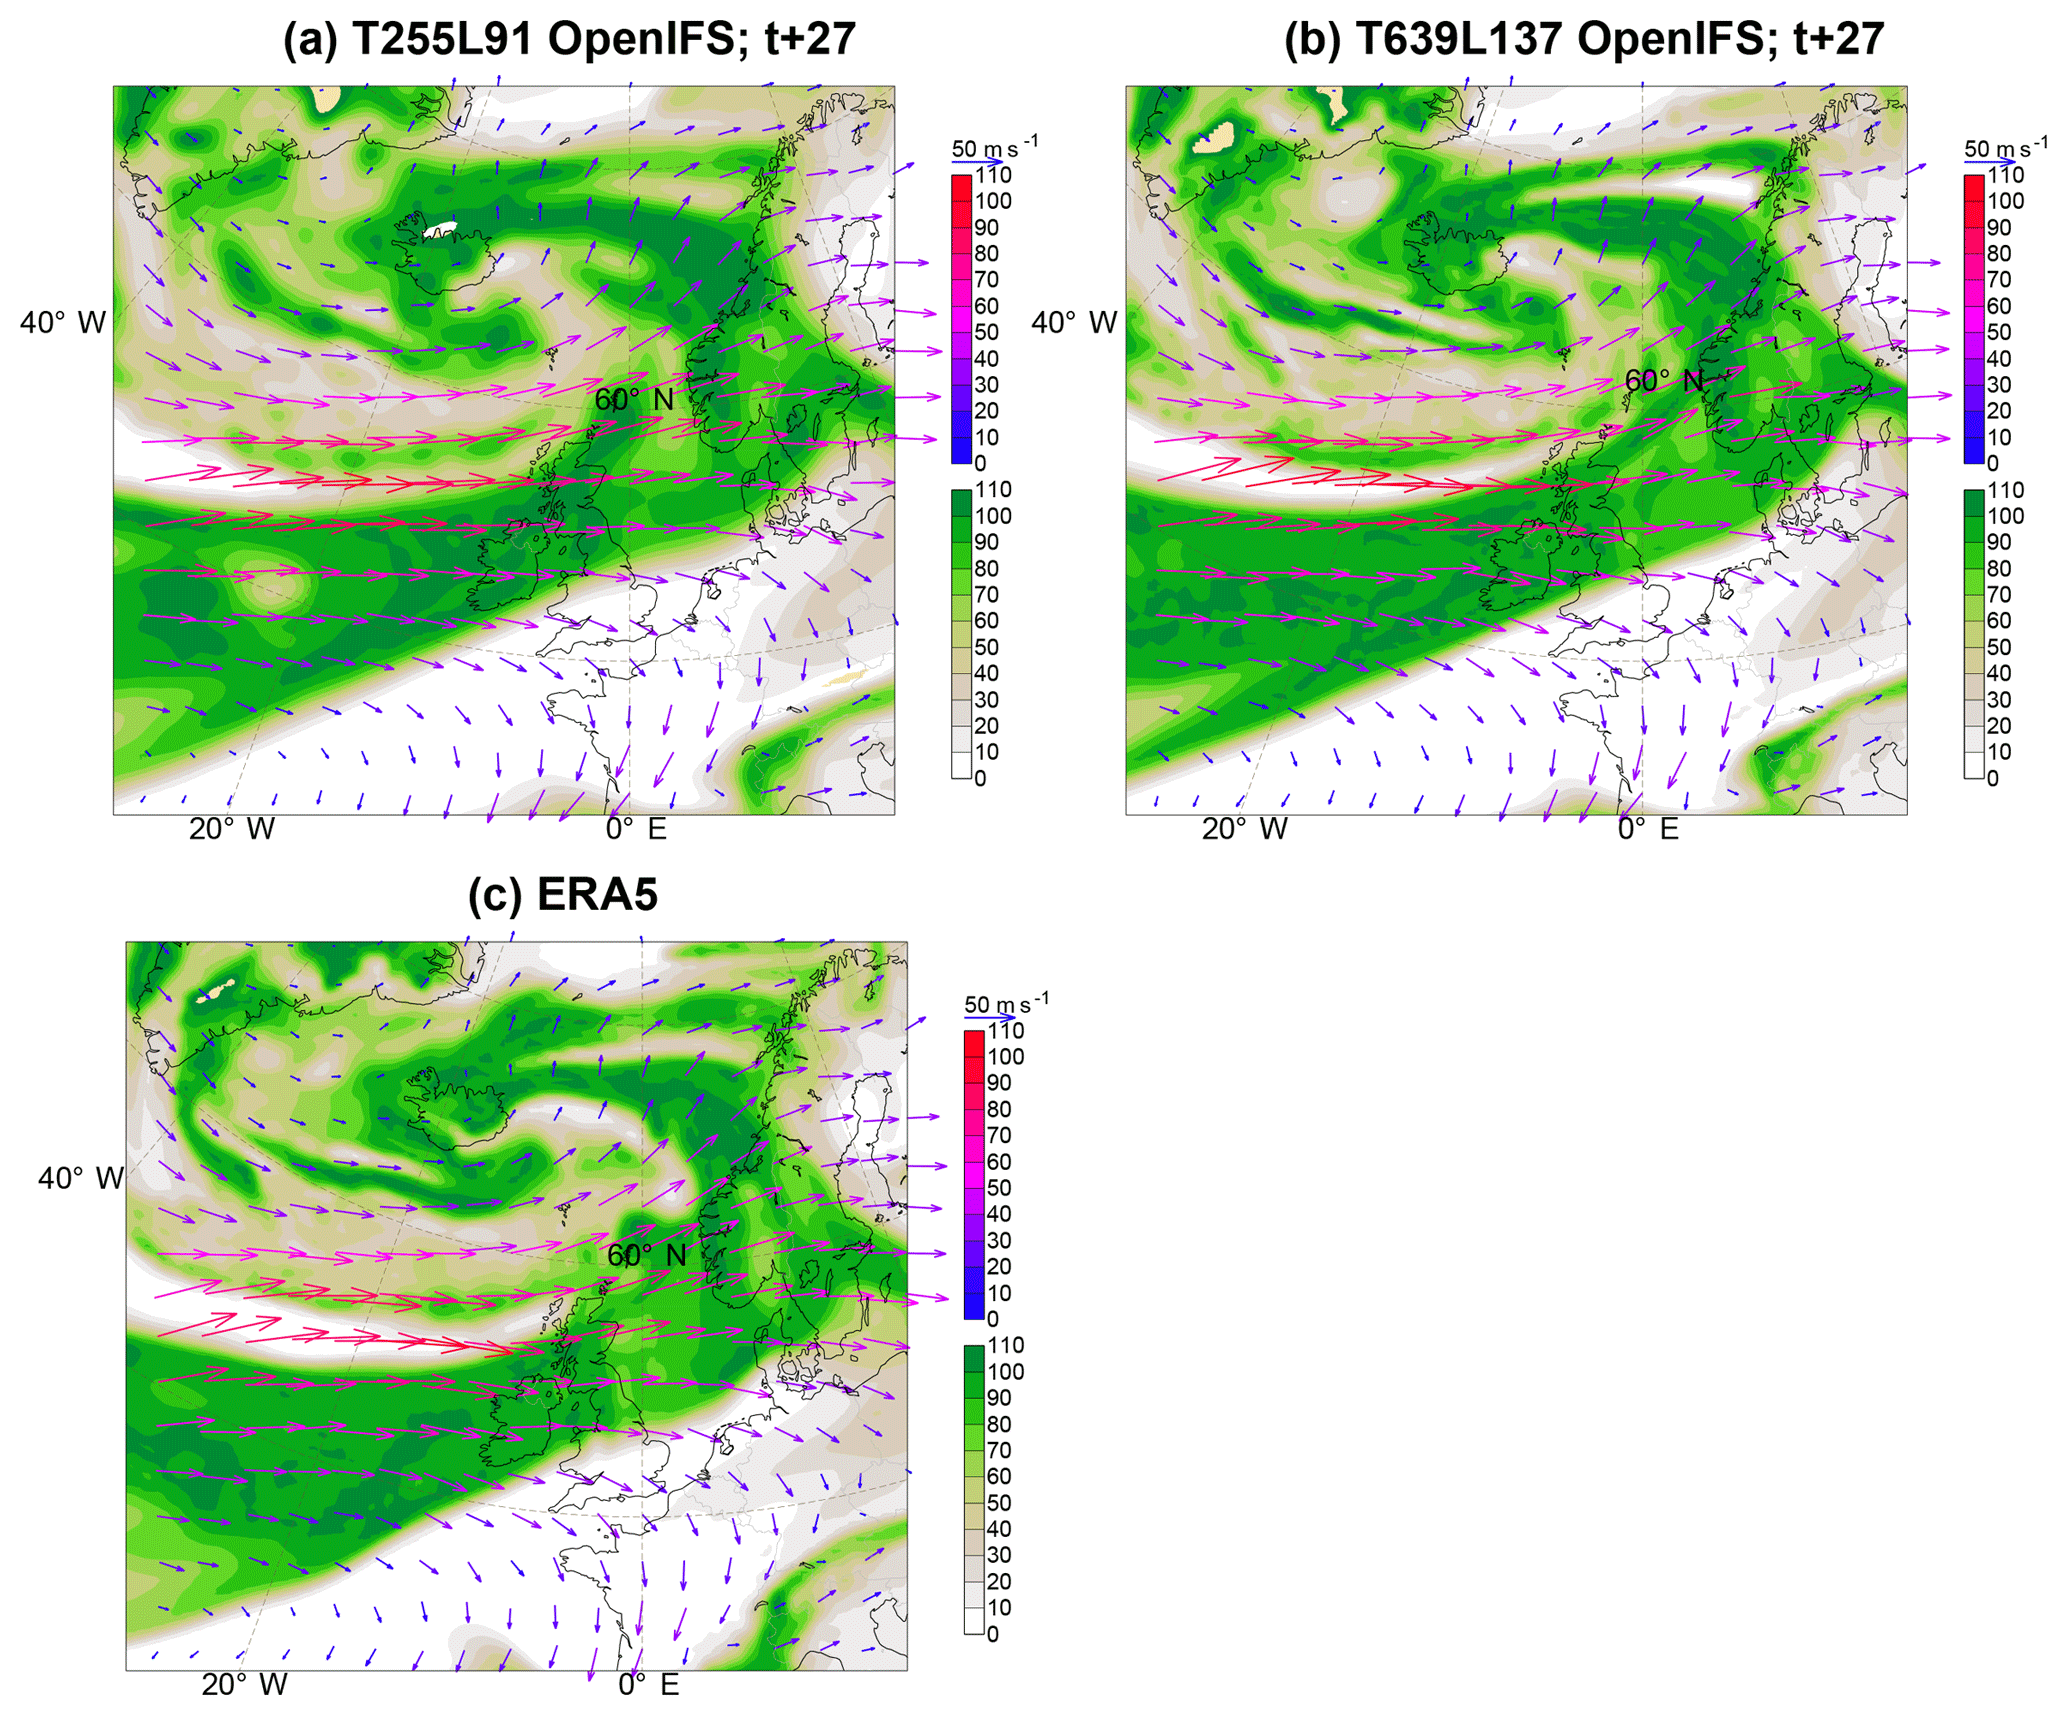 ASR - Using the ECMWF OpenIFS model and state-of-the-art training